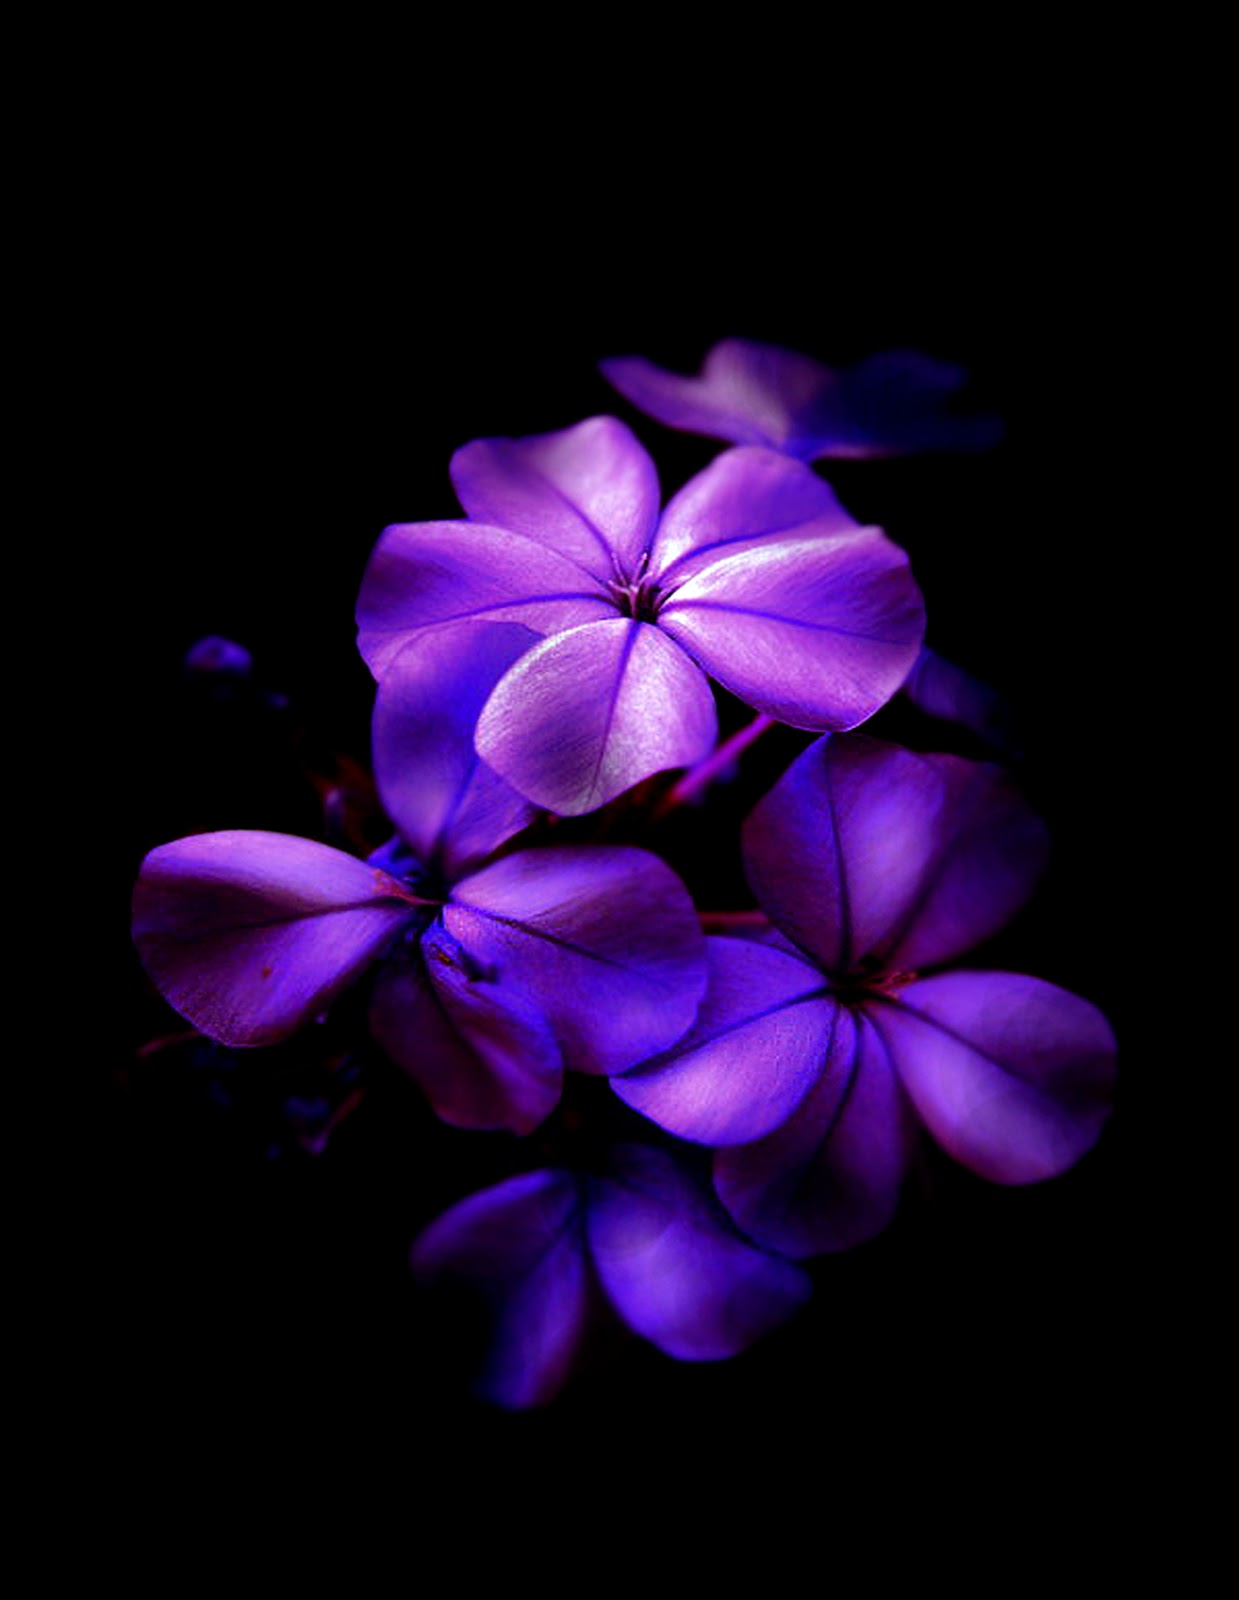 Gallery For > Black And Purple Flower Wallpaper